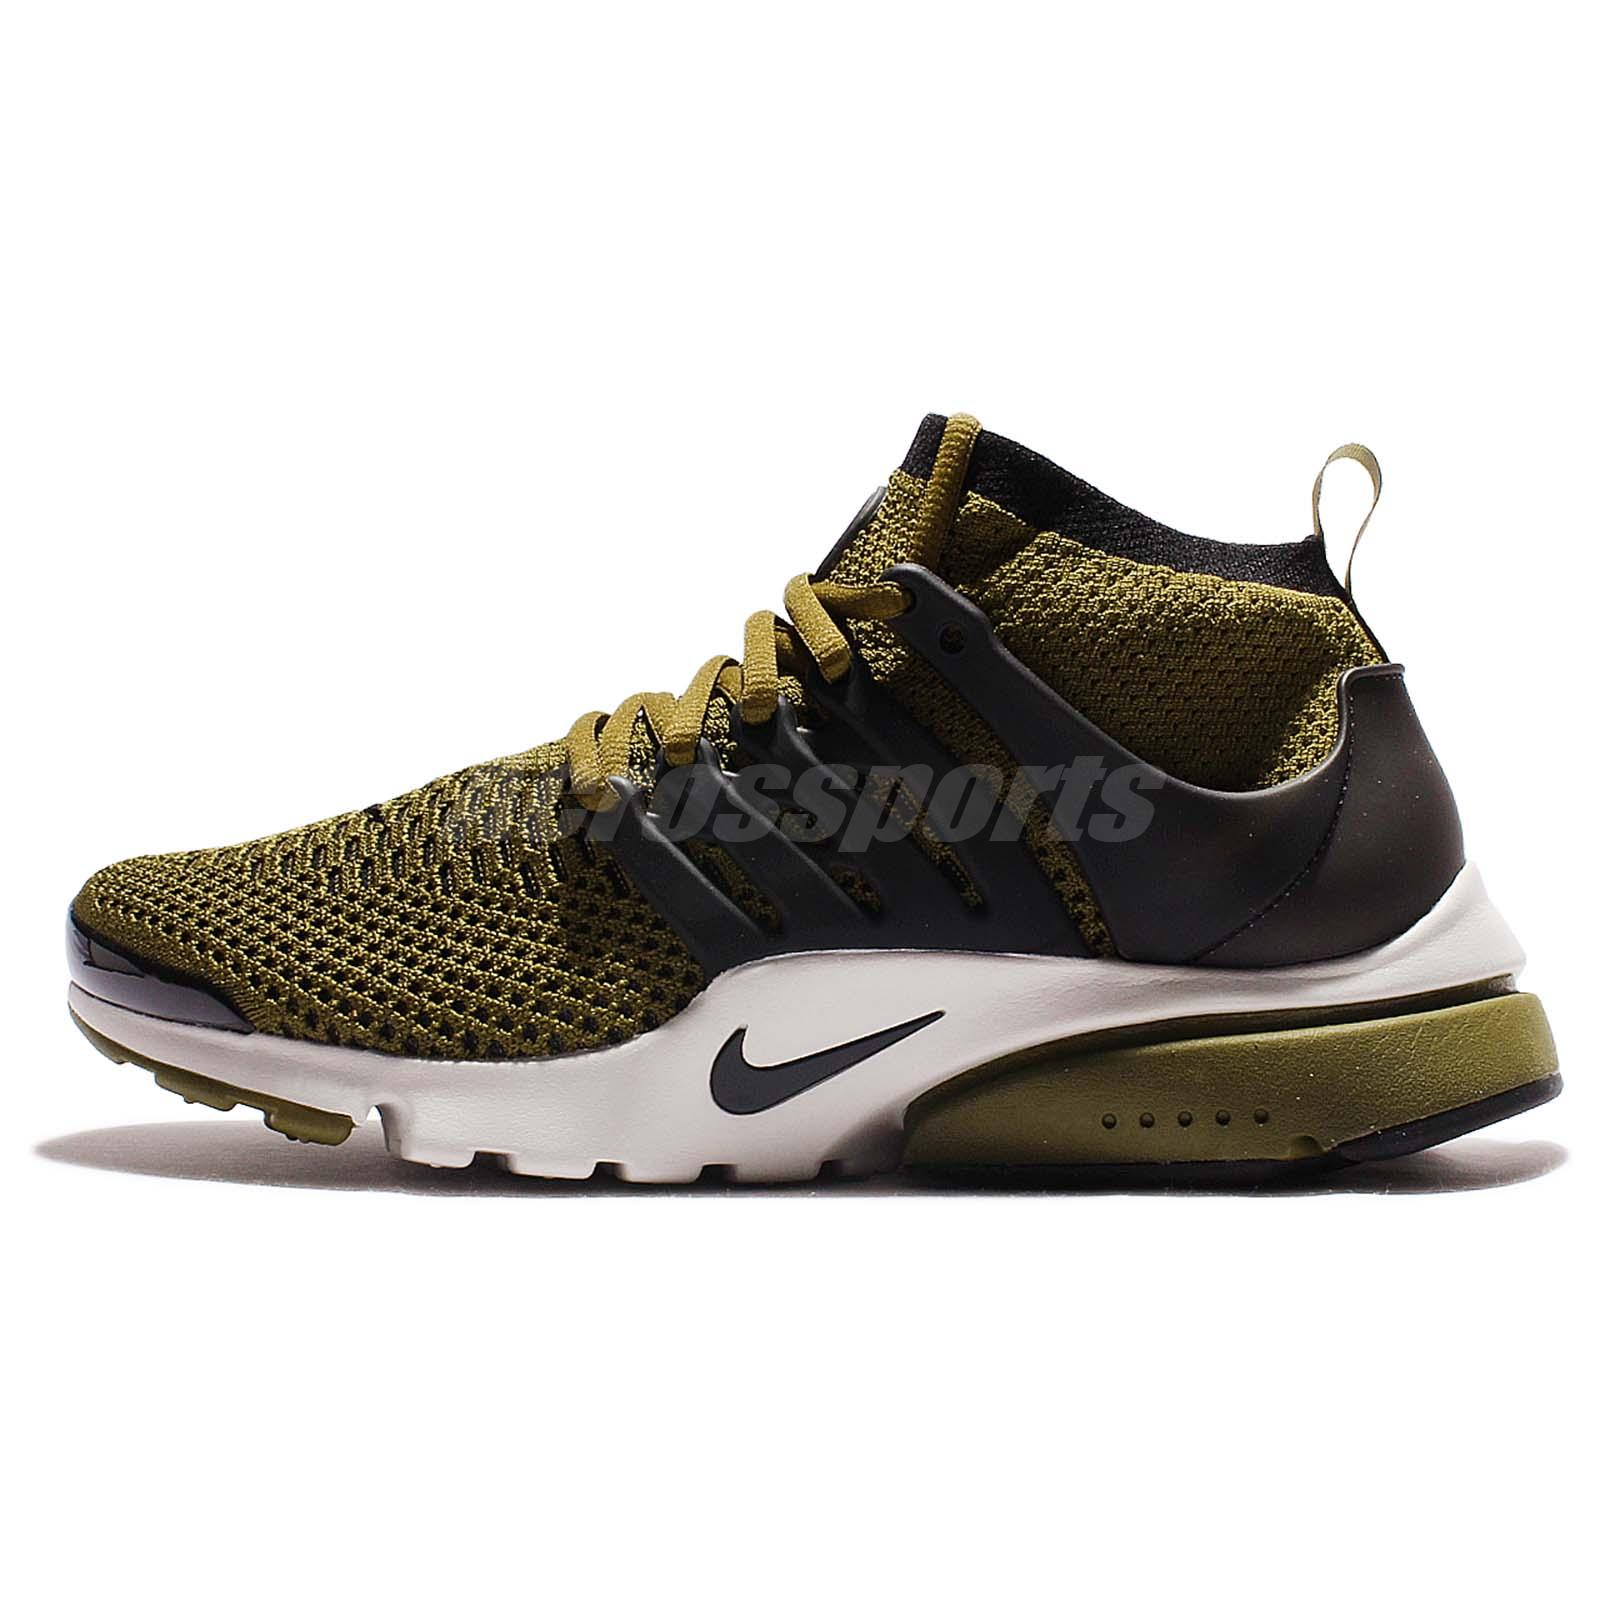 low priced cd0c9 01243 ... where to buy nike air presto flyknit ultra olive flak undefeated green  arriving a4c40 c4b39 womens ...